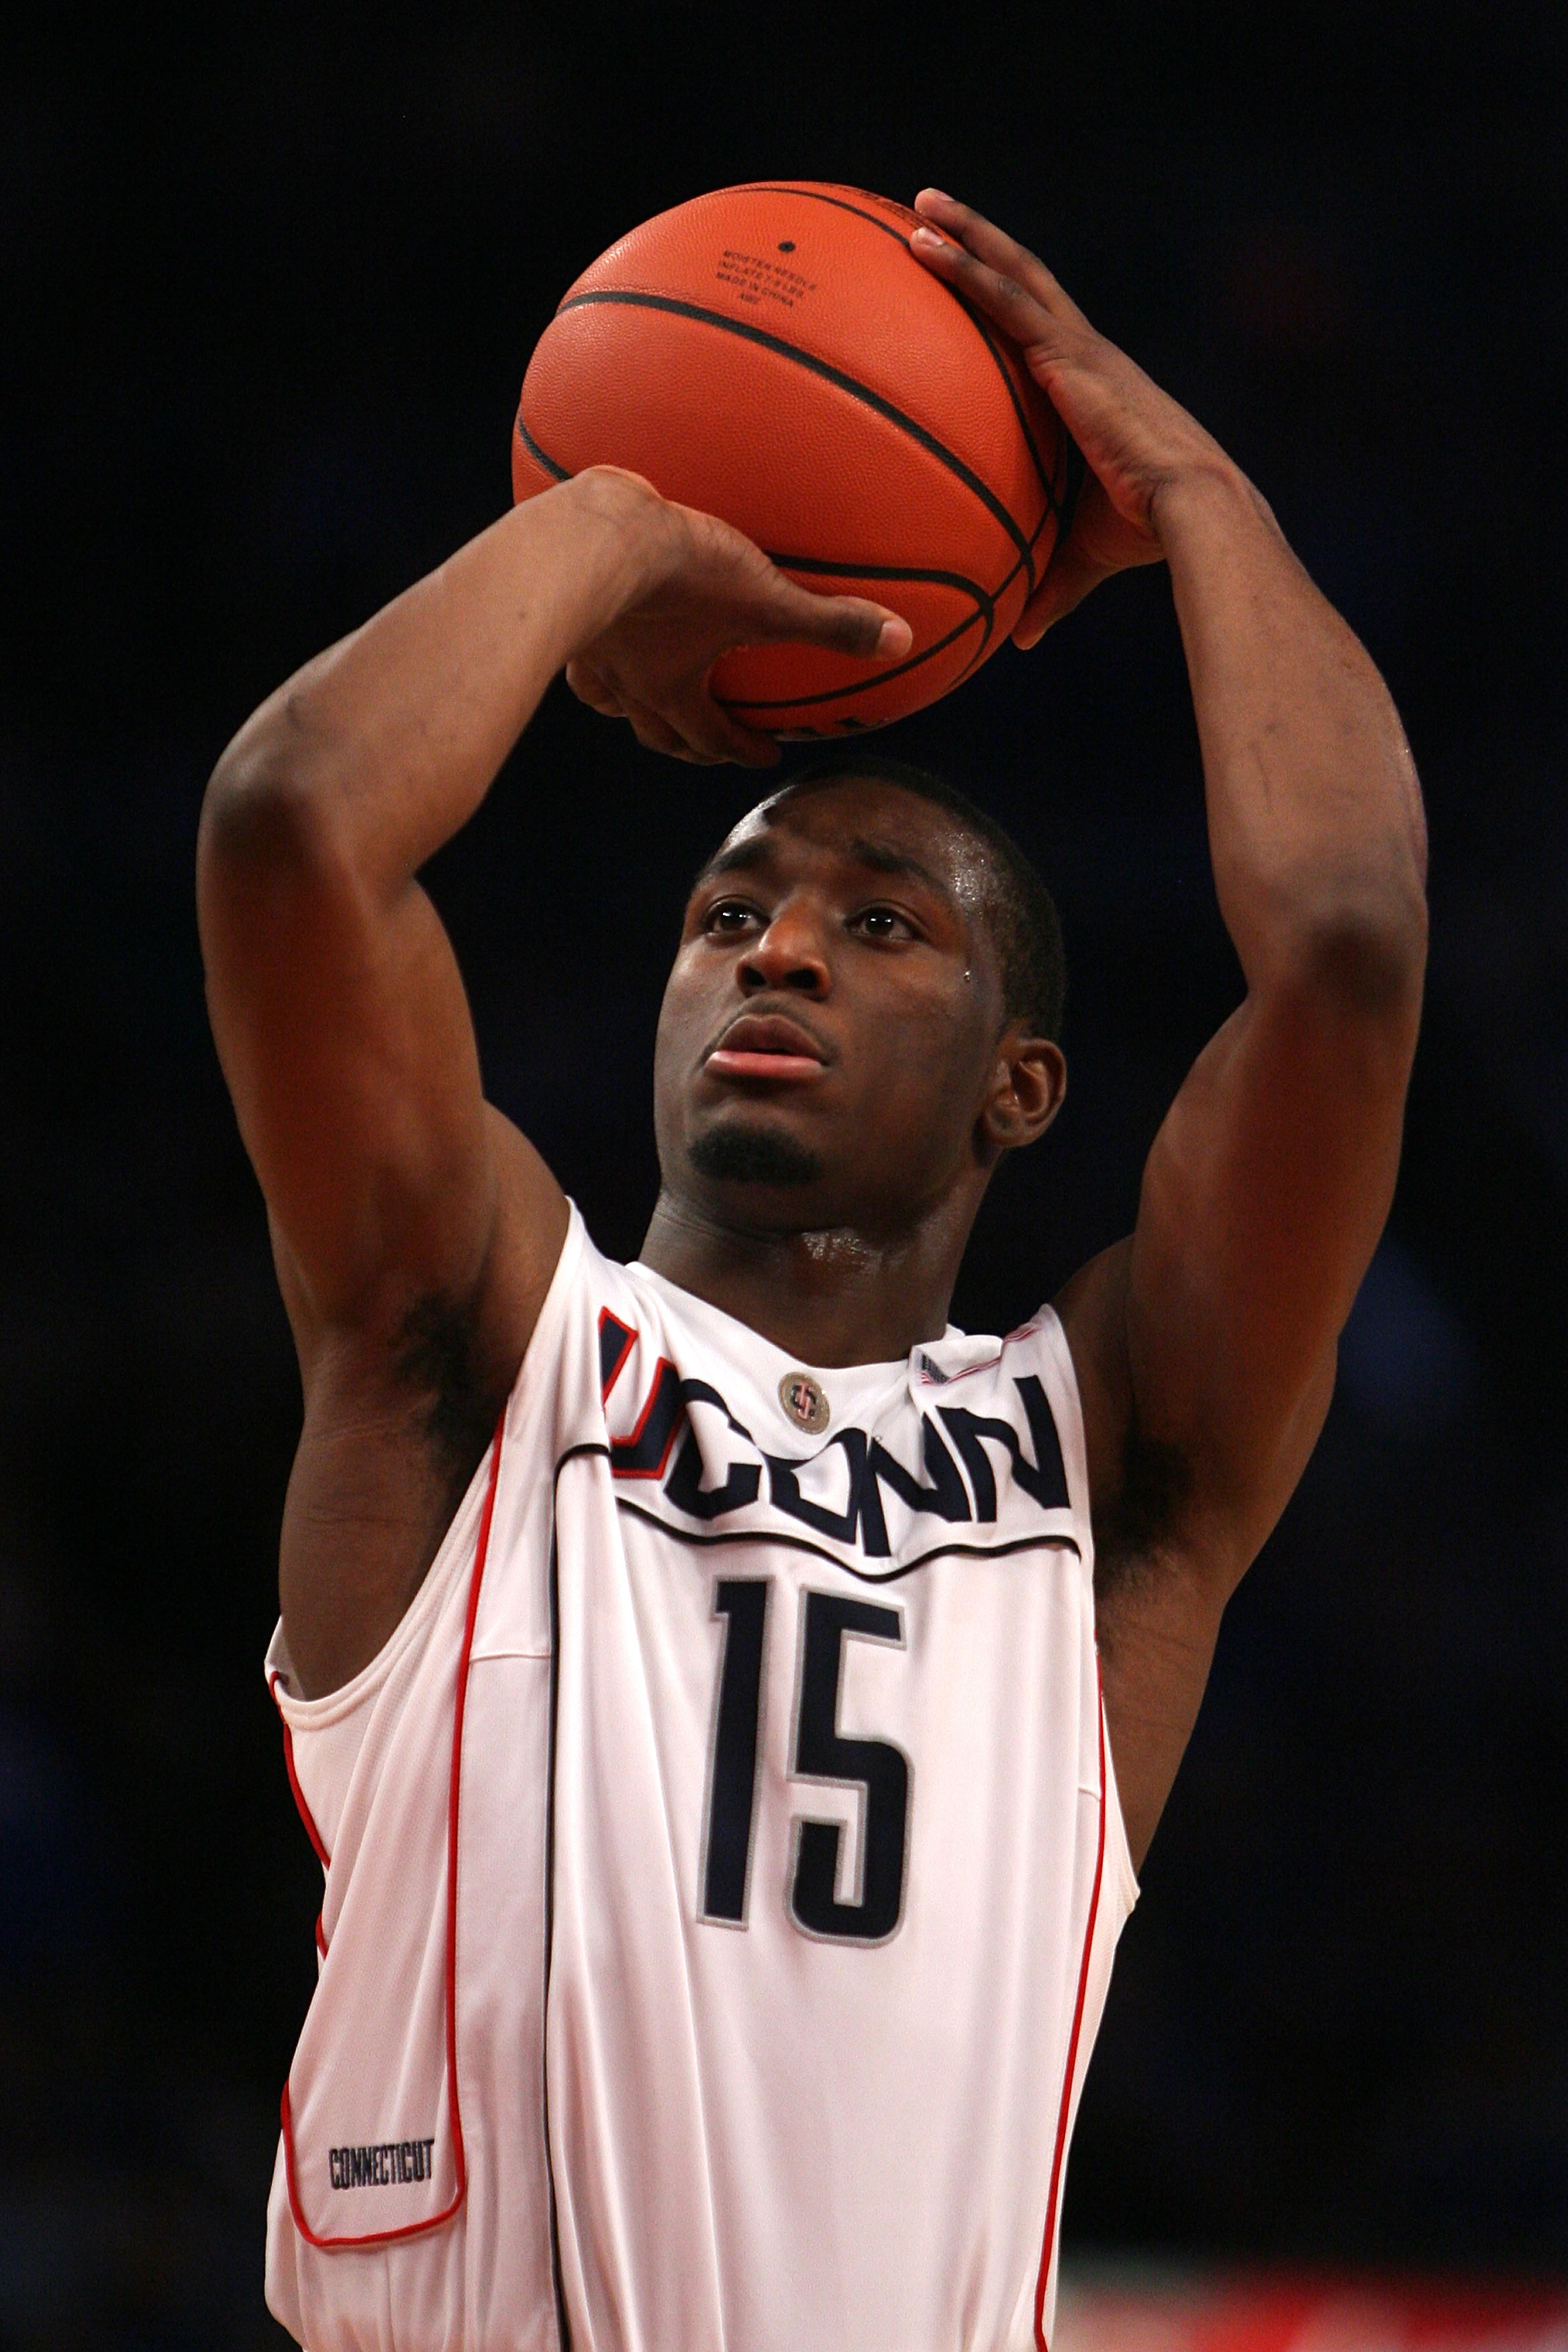 NEW YORK - DECEMBER 09:  Kemba Walker #15 of the Connecticut Huskies shoots a free throw against the Kentucky Wildcats during the SEC Big East Invitational at Madison Square Garden on December 9, 2009 in New York, New York.  (Photo by Chris Trotman/Getty